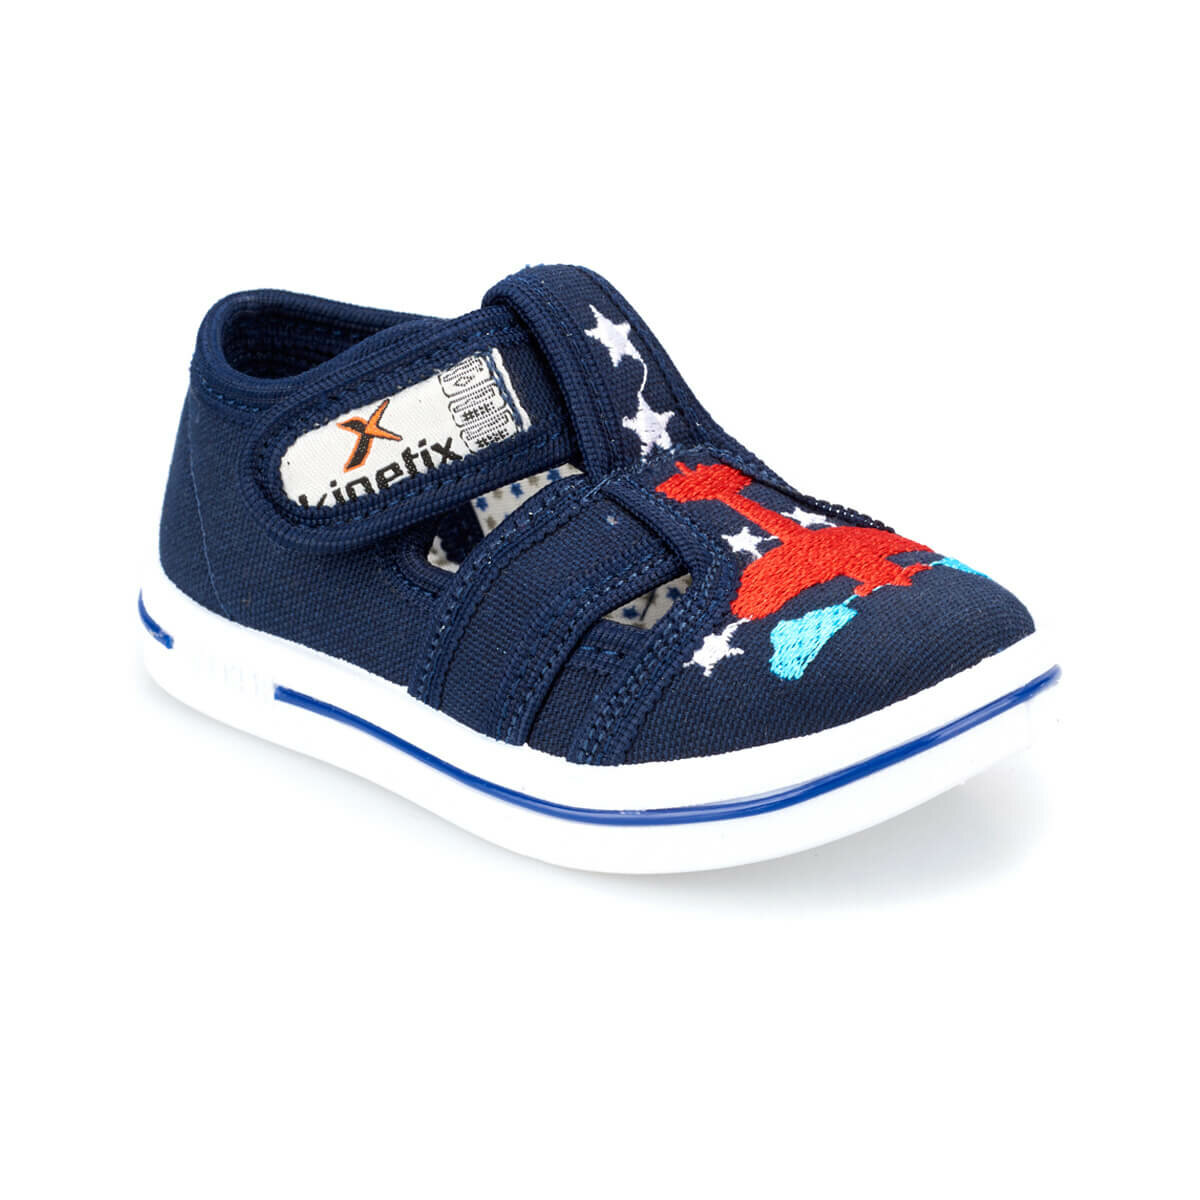 FLO ZYRA Navy Blue Male Child Sneaker Shoes KINETIX